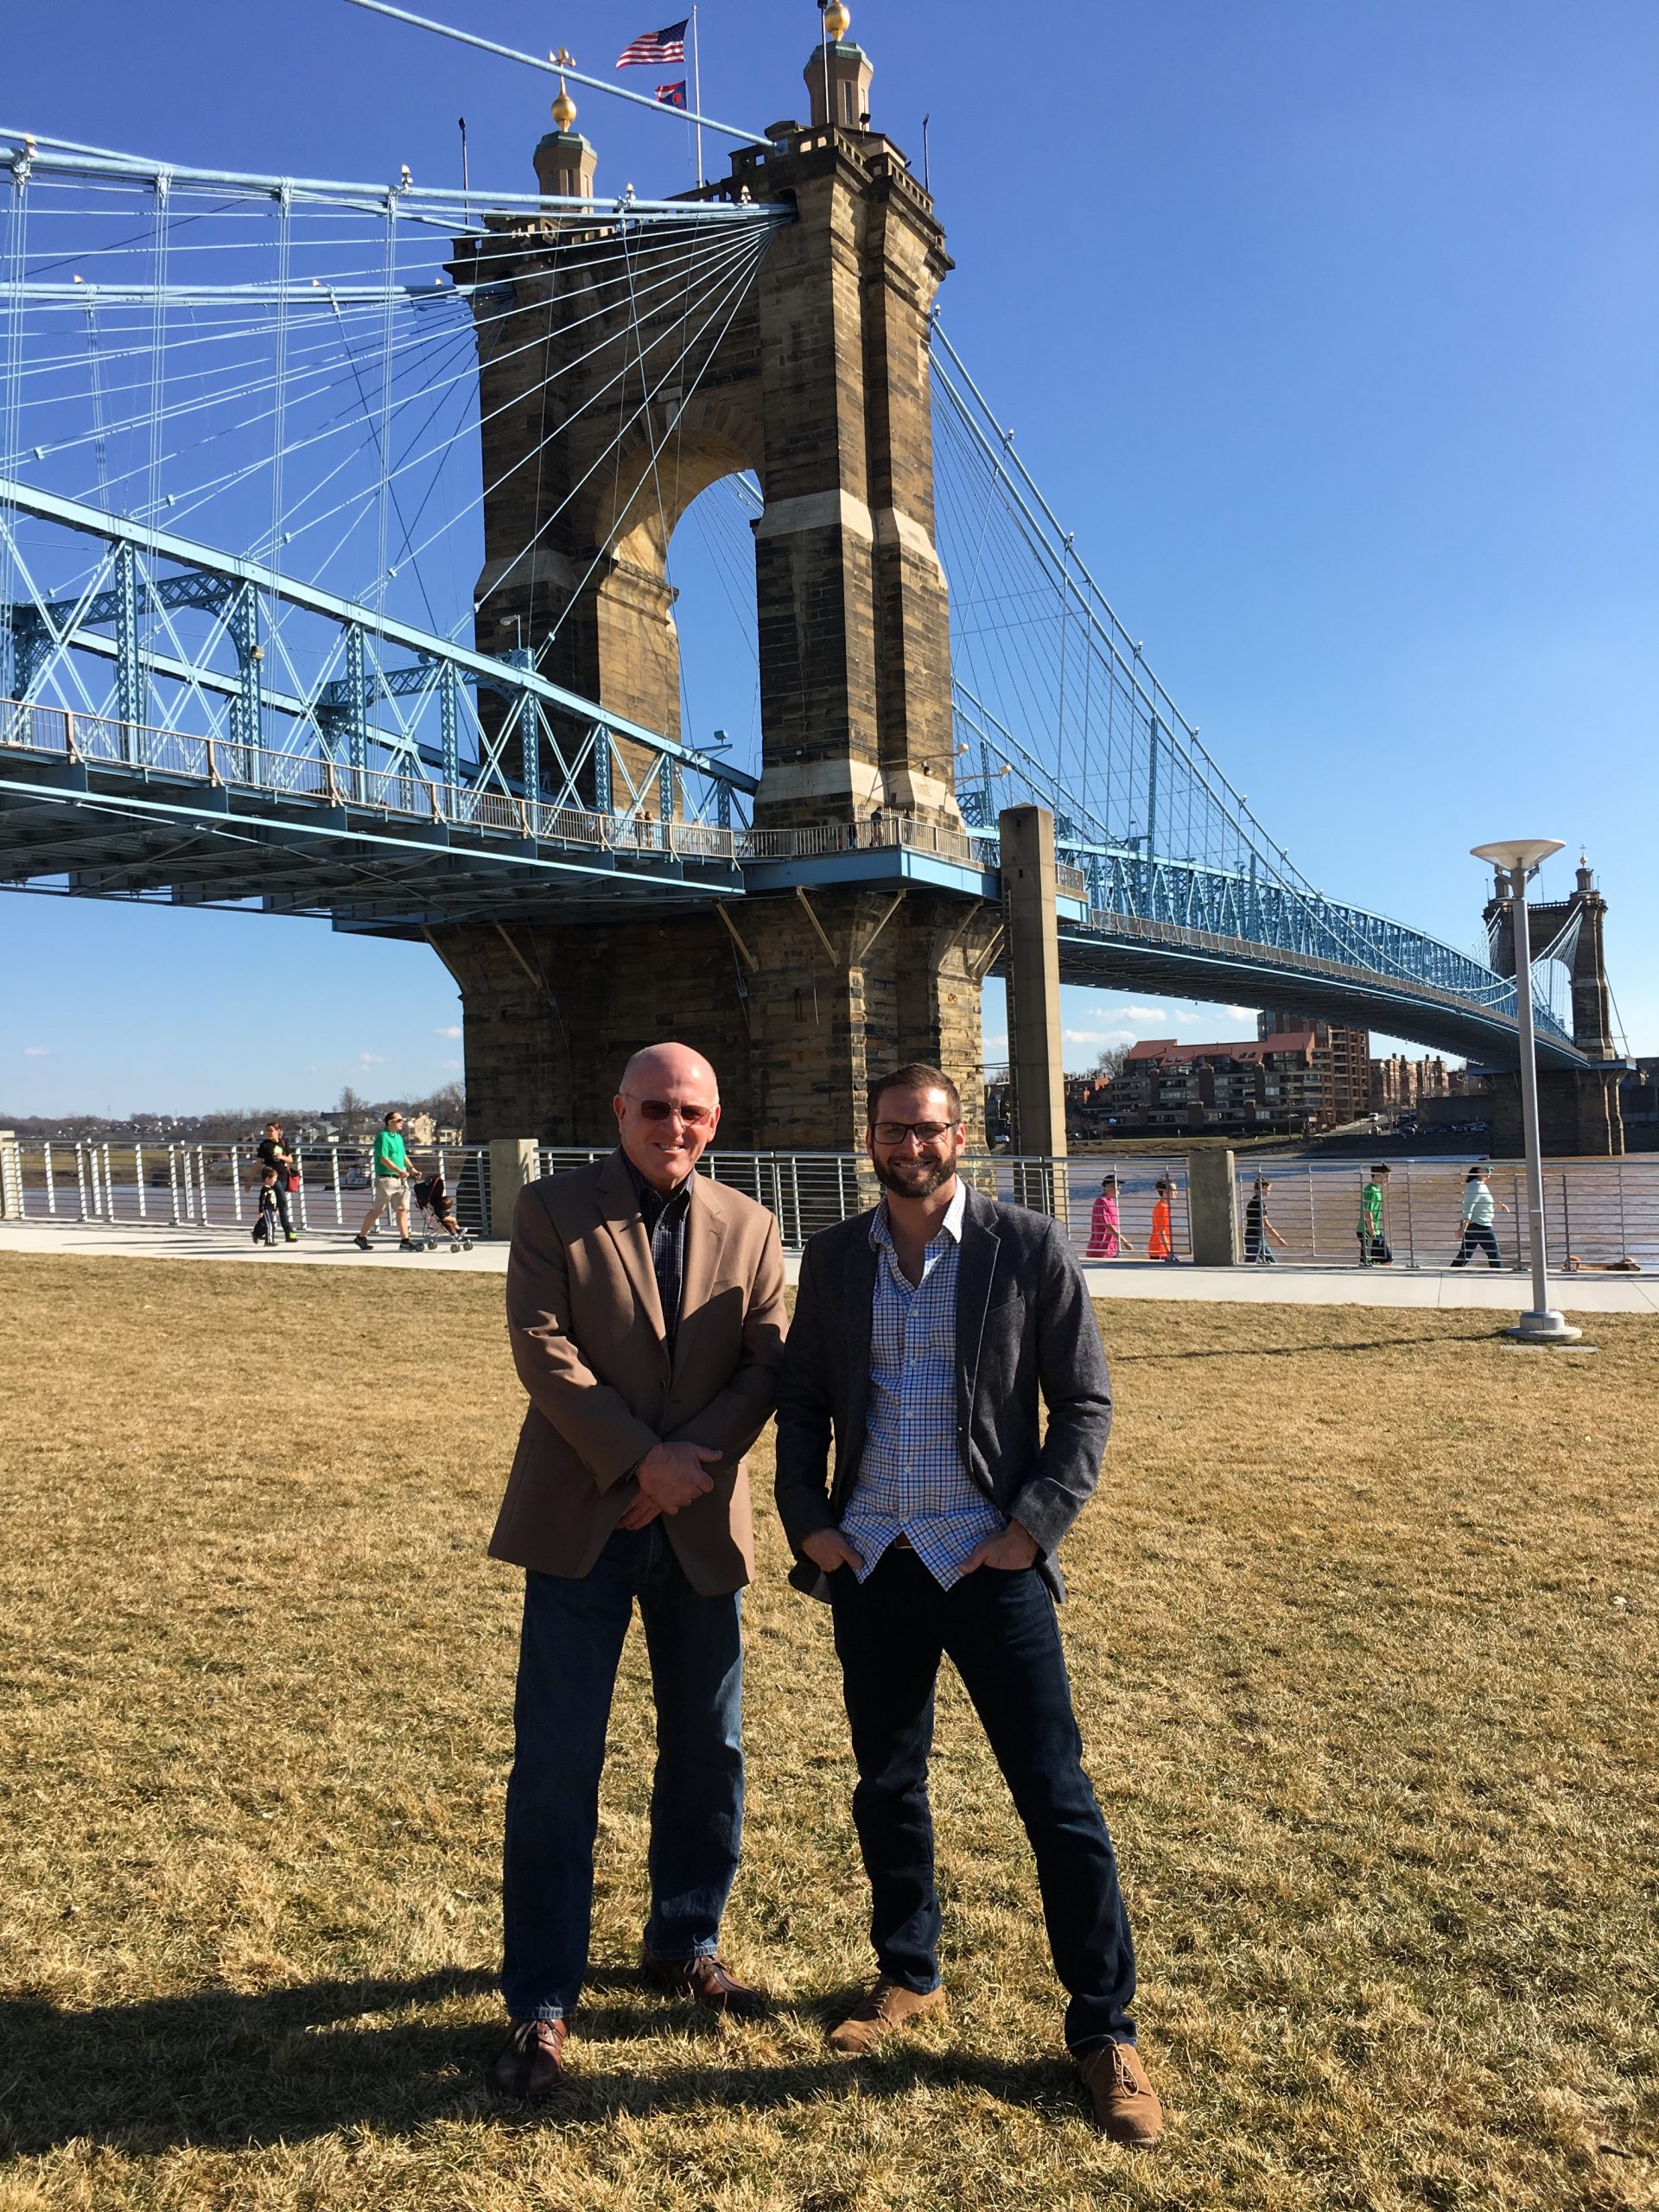 two men standing in front of a bridge and smiling